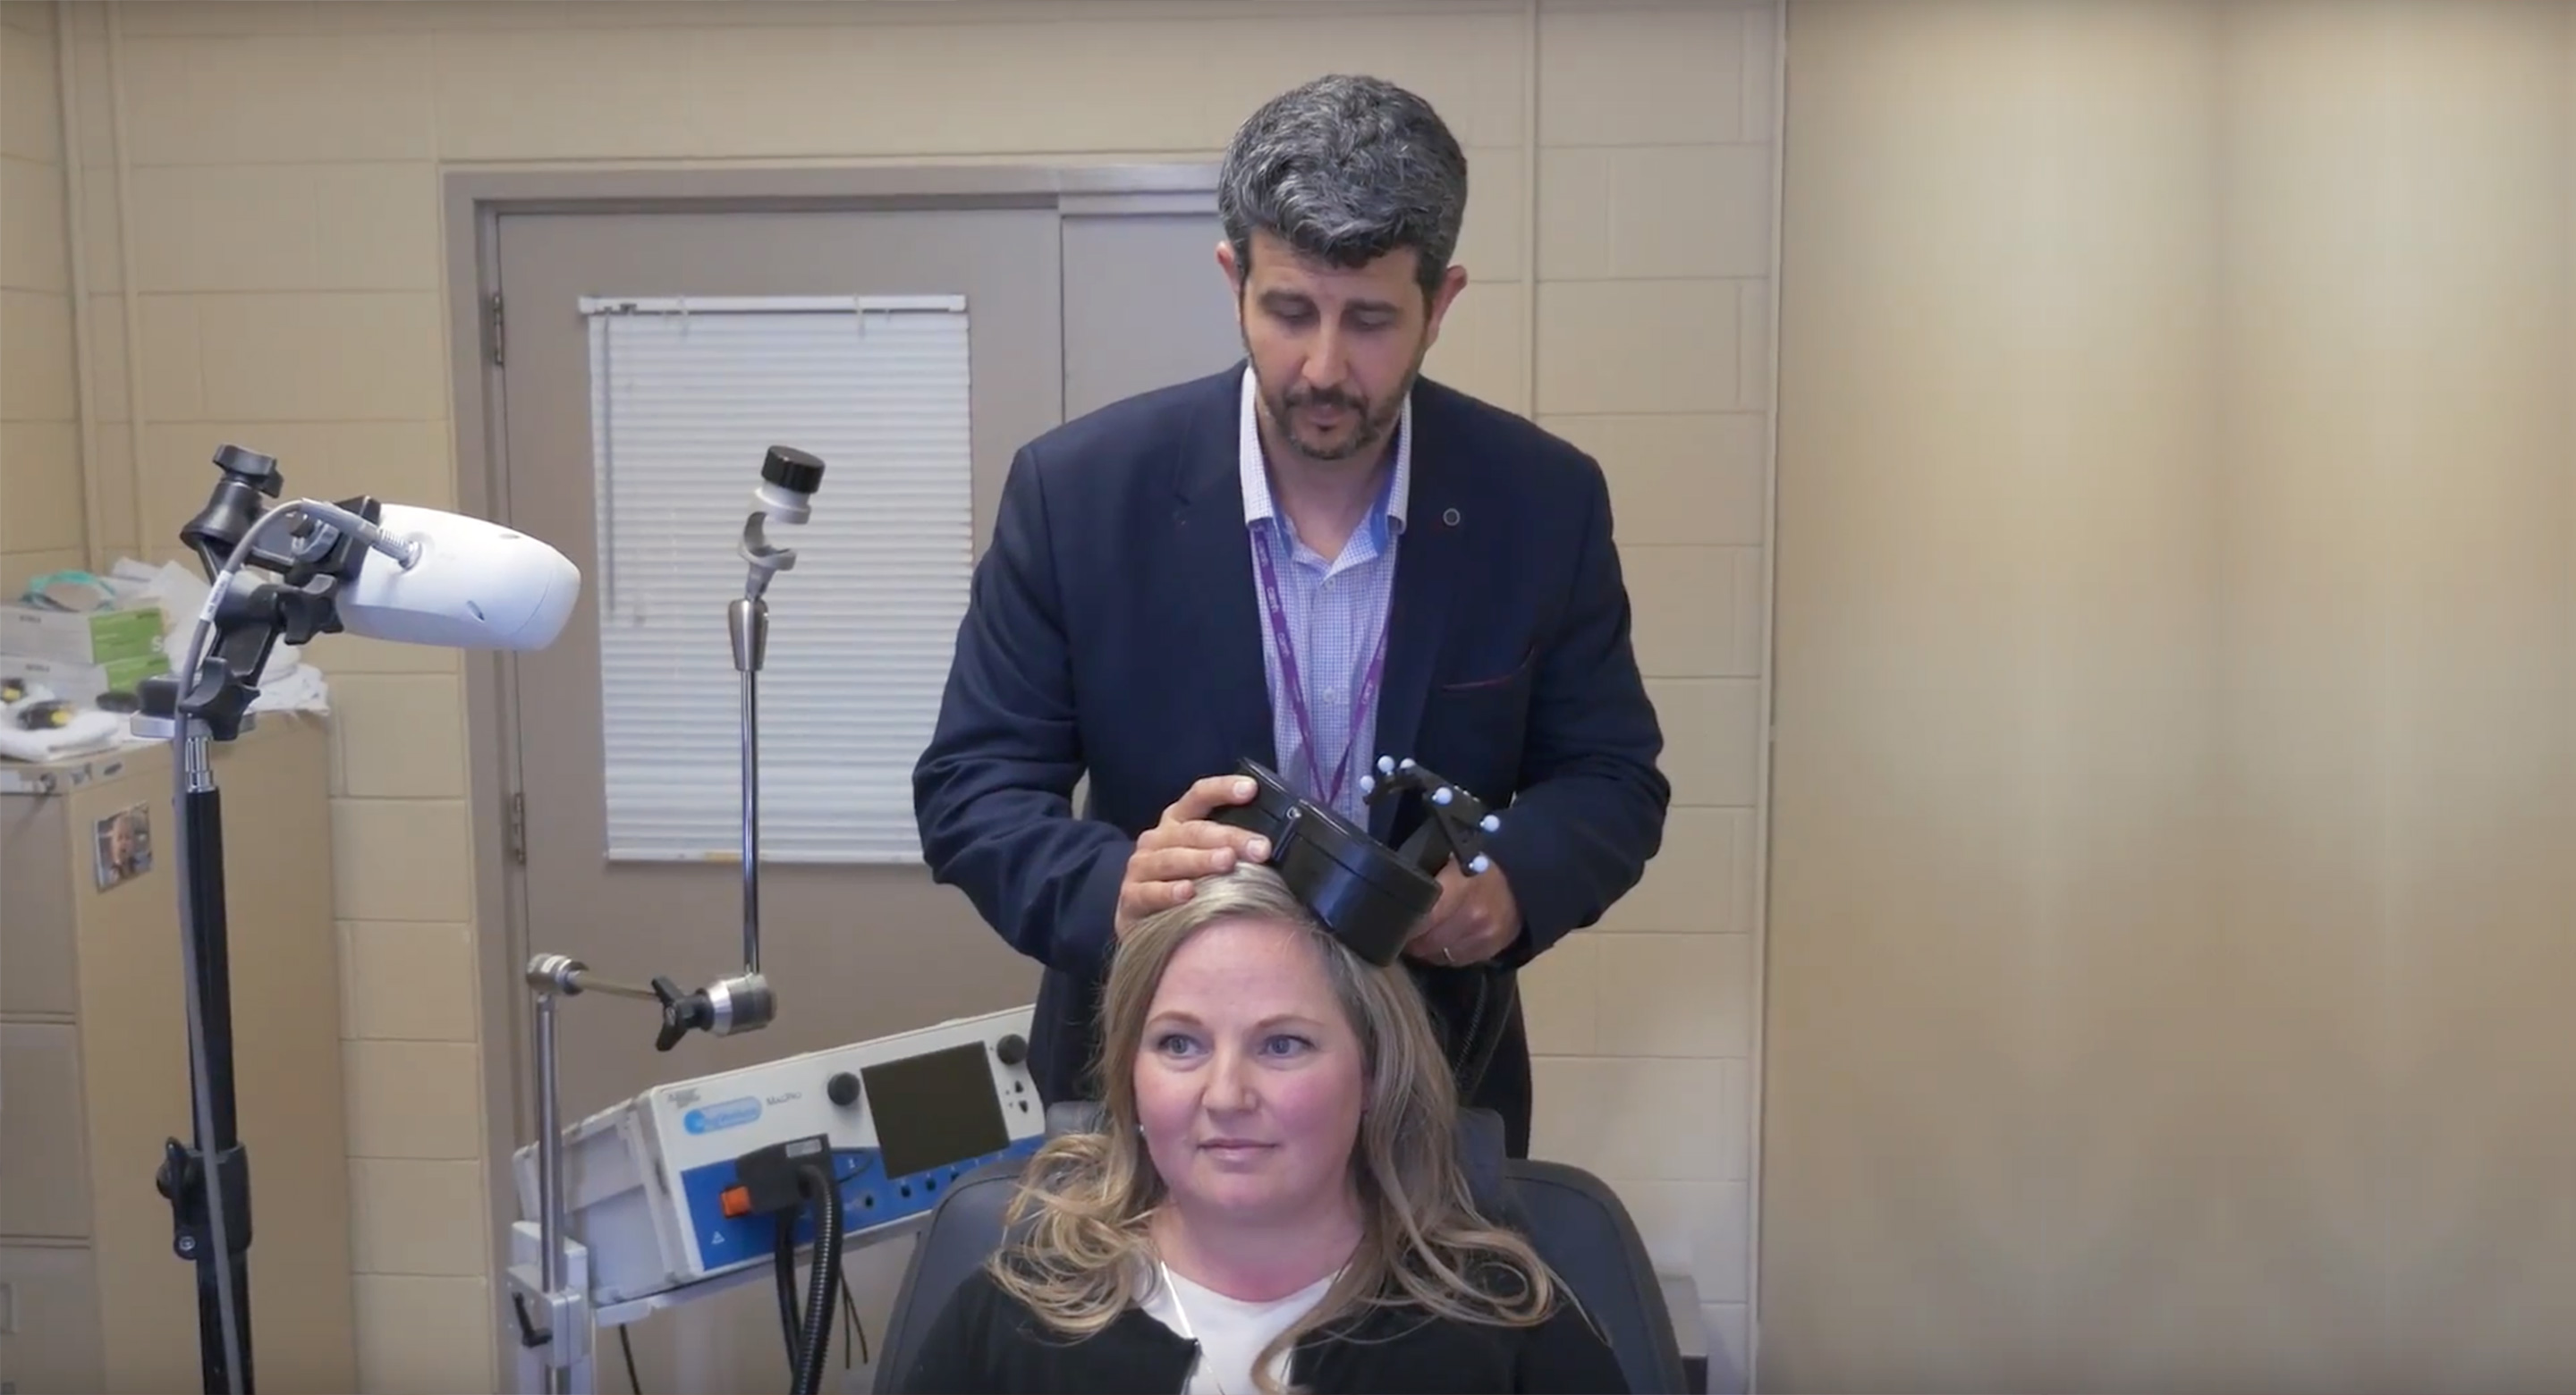 Dr. Daniel Blumberger demonstrates intermittent theta burst stimulation